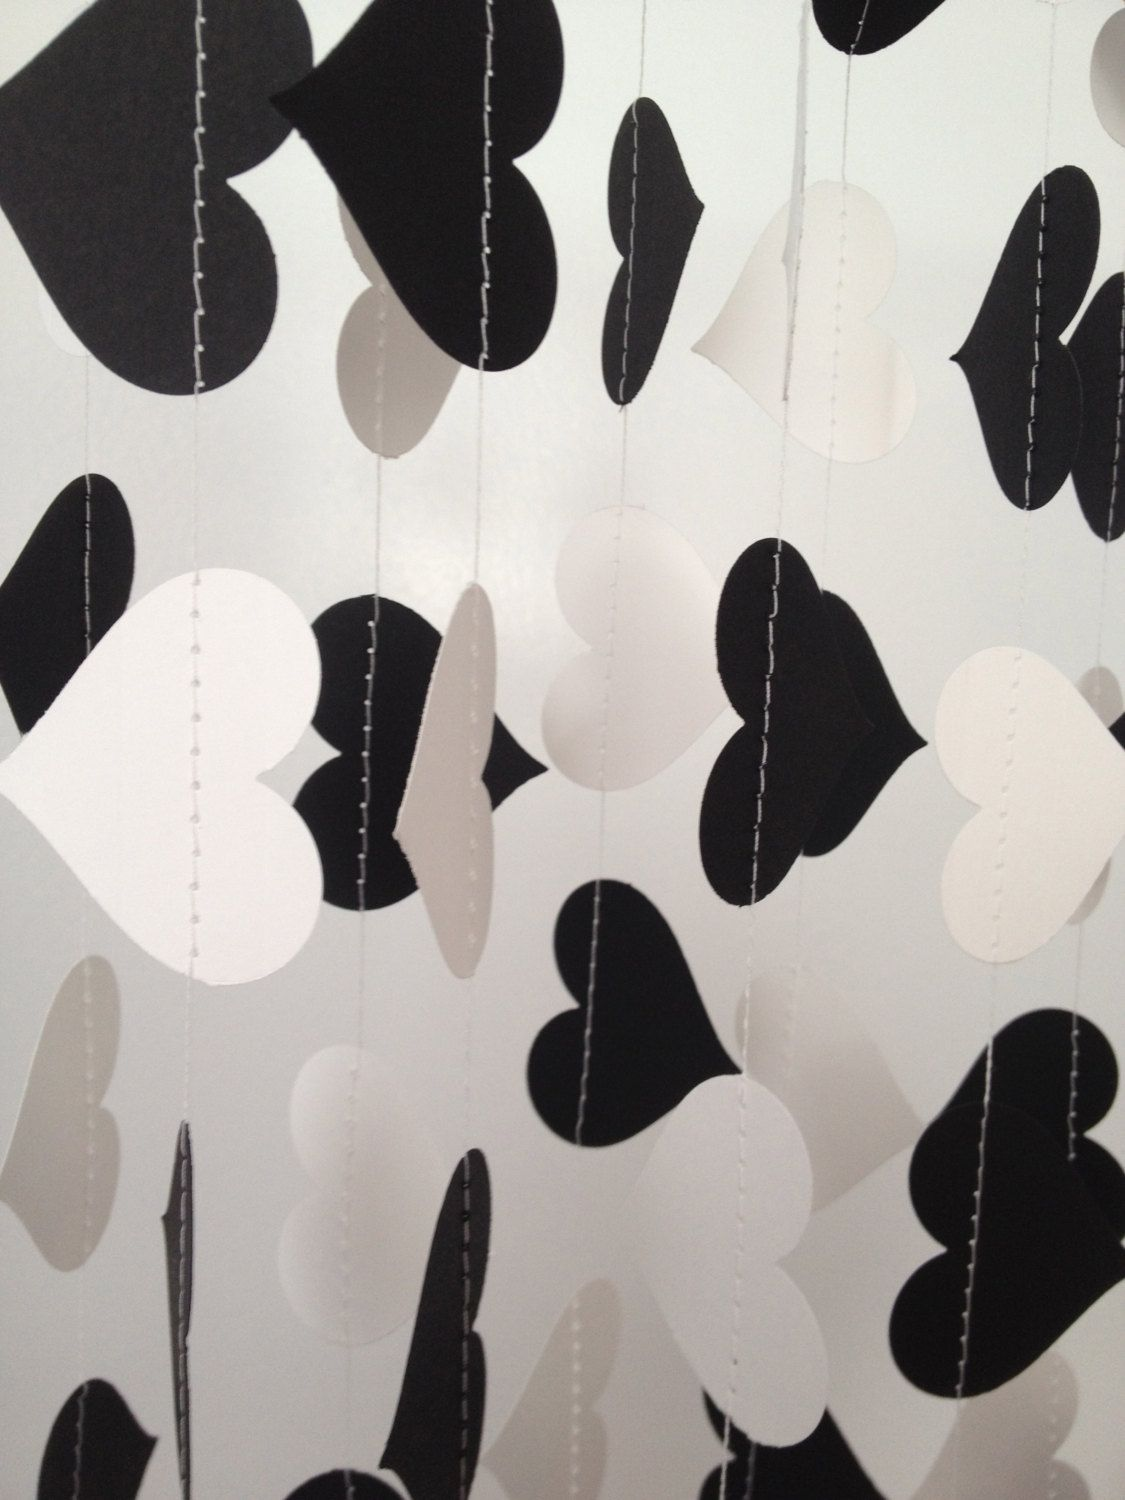 Black and white wedding decor ideas  Black White  ft Heart Paper Garland Party by ChhaysHandiCraft